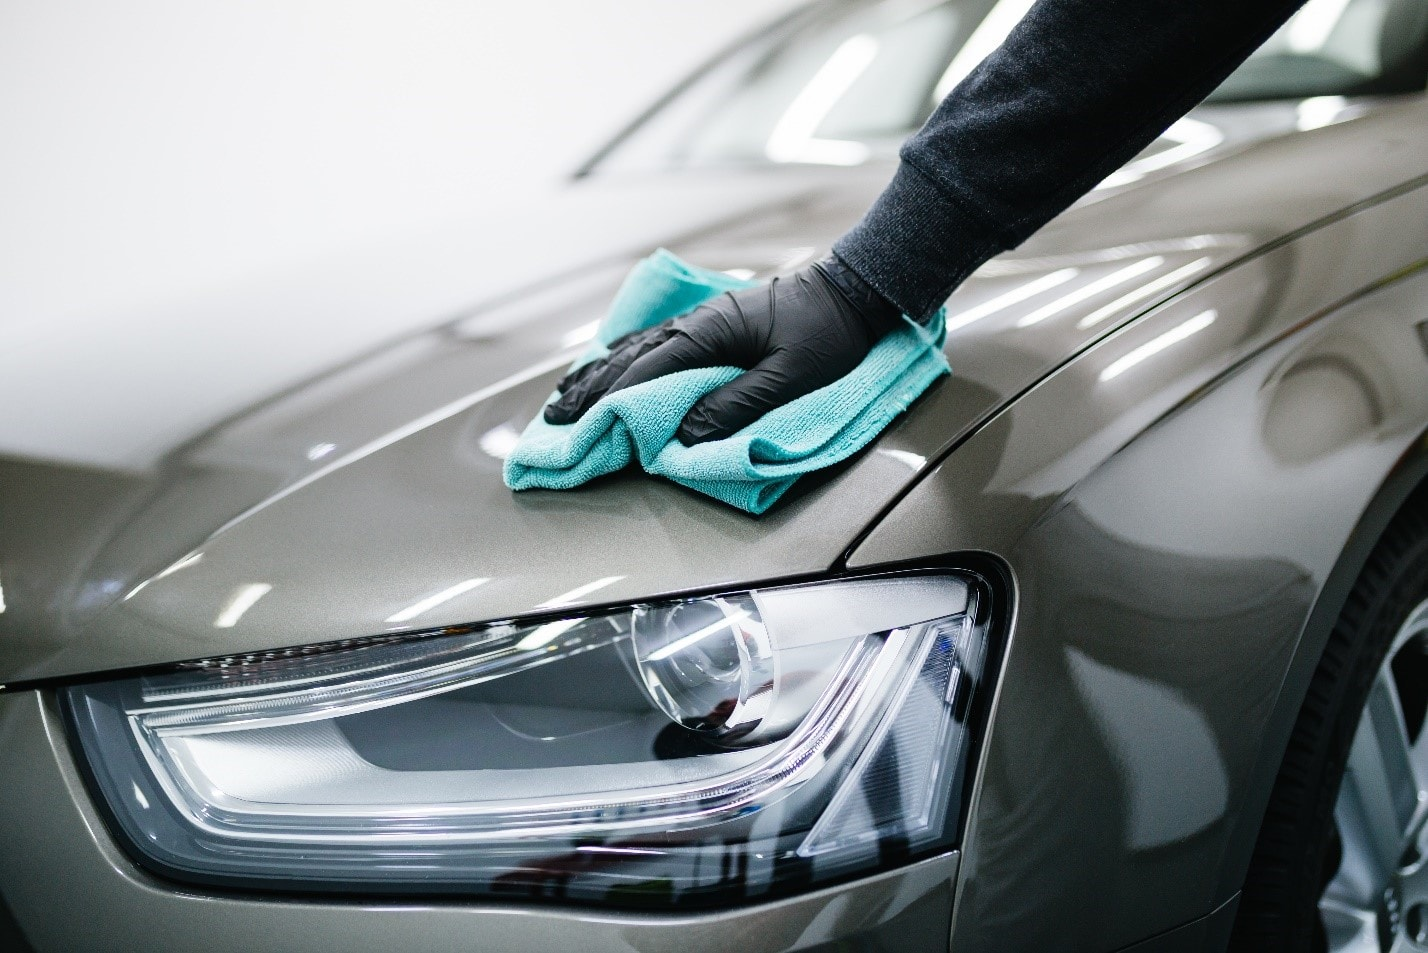 Cleaning Exteriror of car